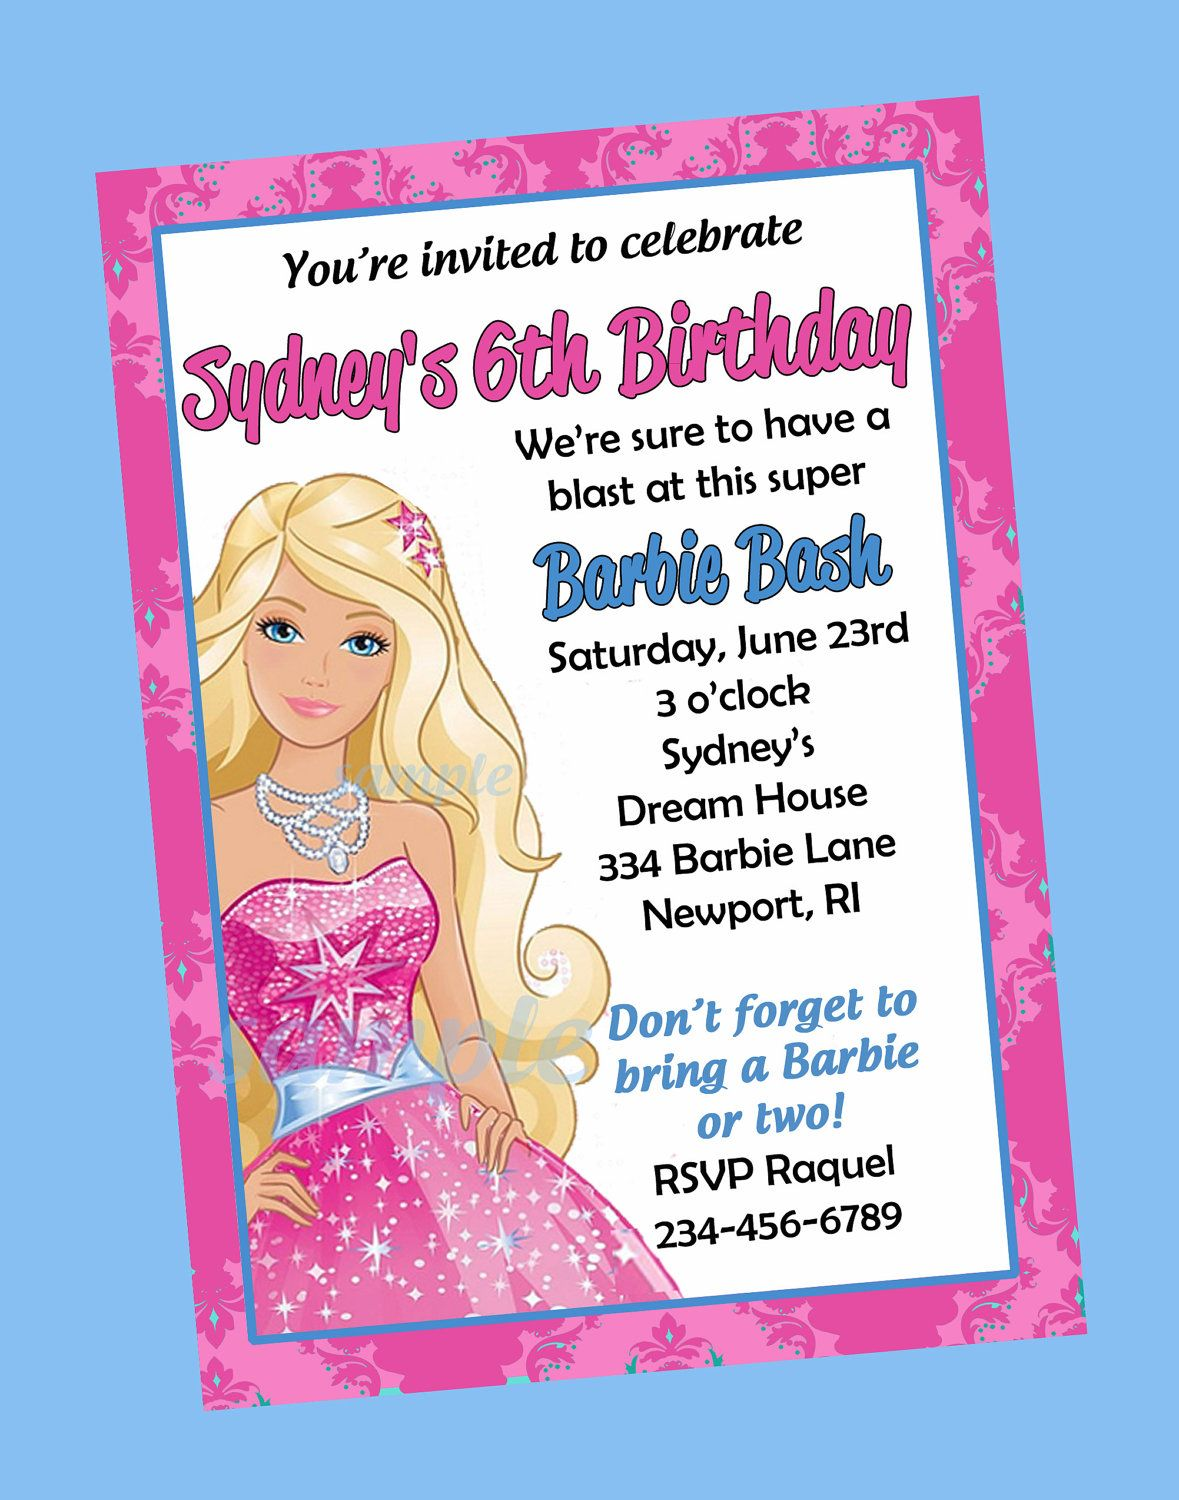 Birthday Invitations Printable And Post Barbie Barbie Invitations Barbie Birthday Party Barbie Birthday Invitations